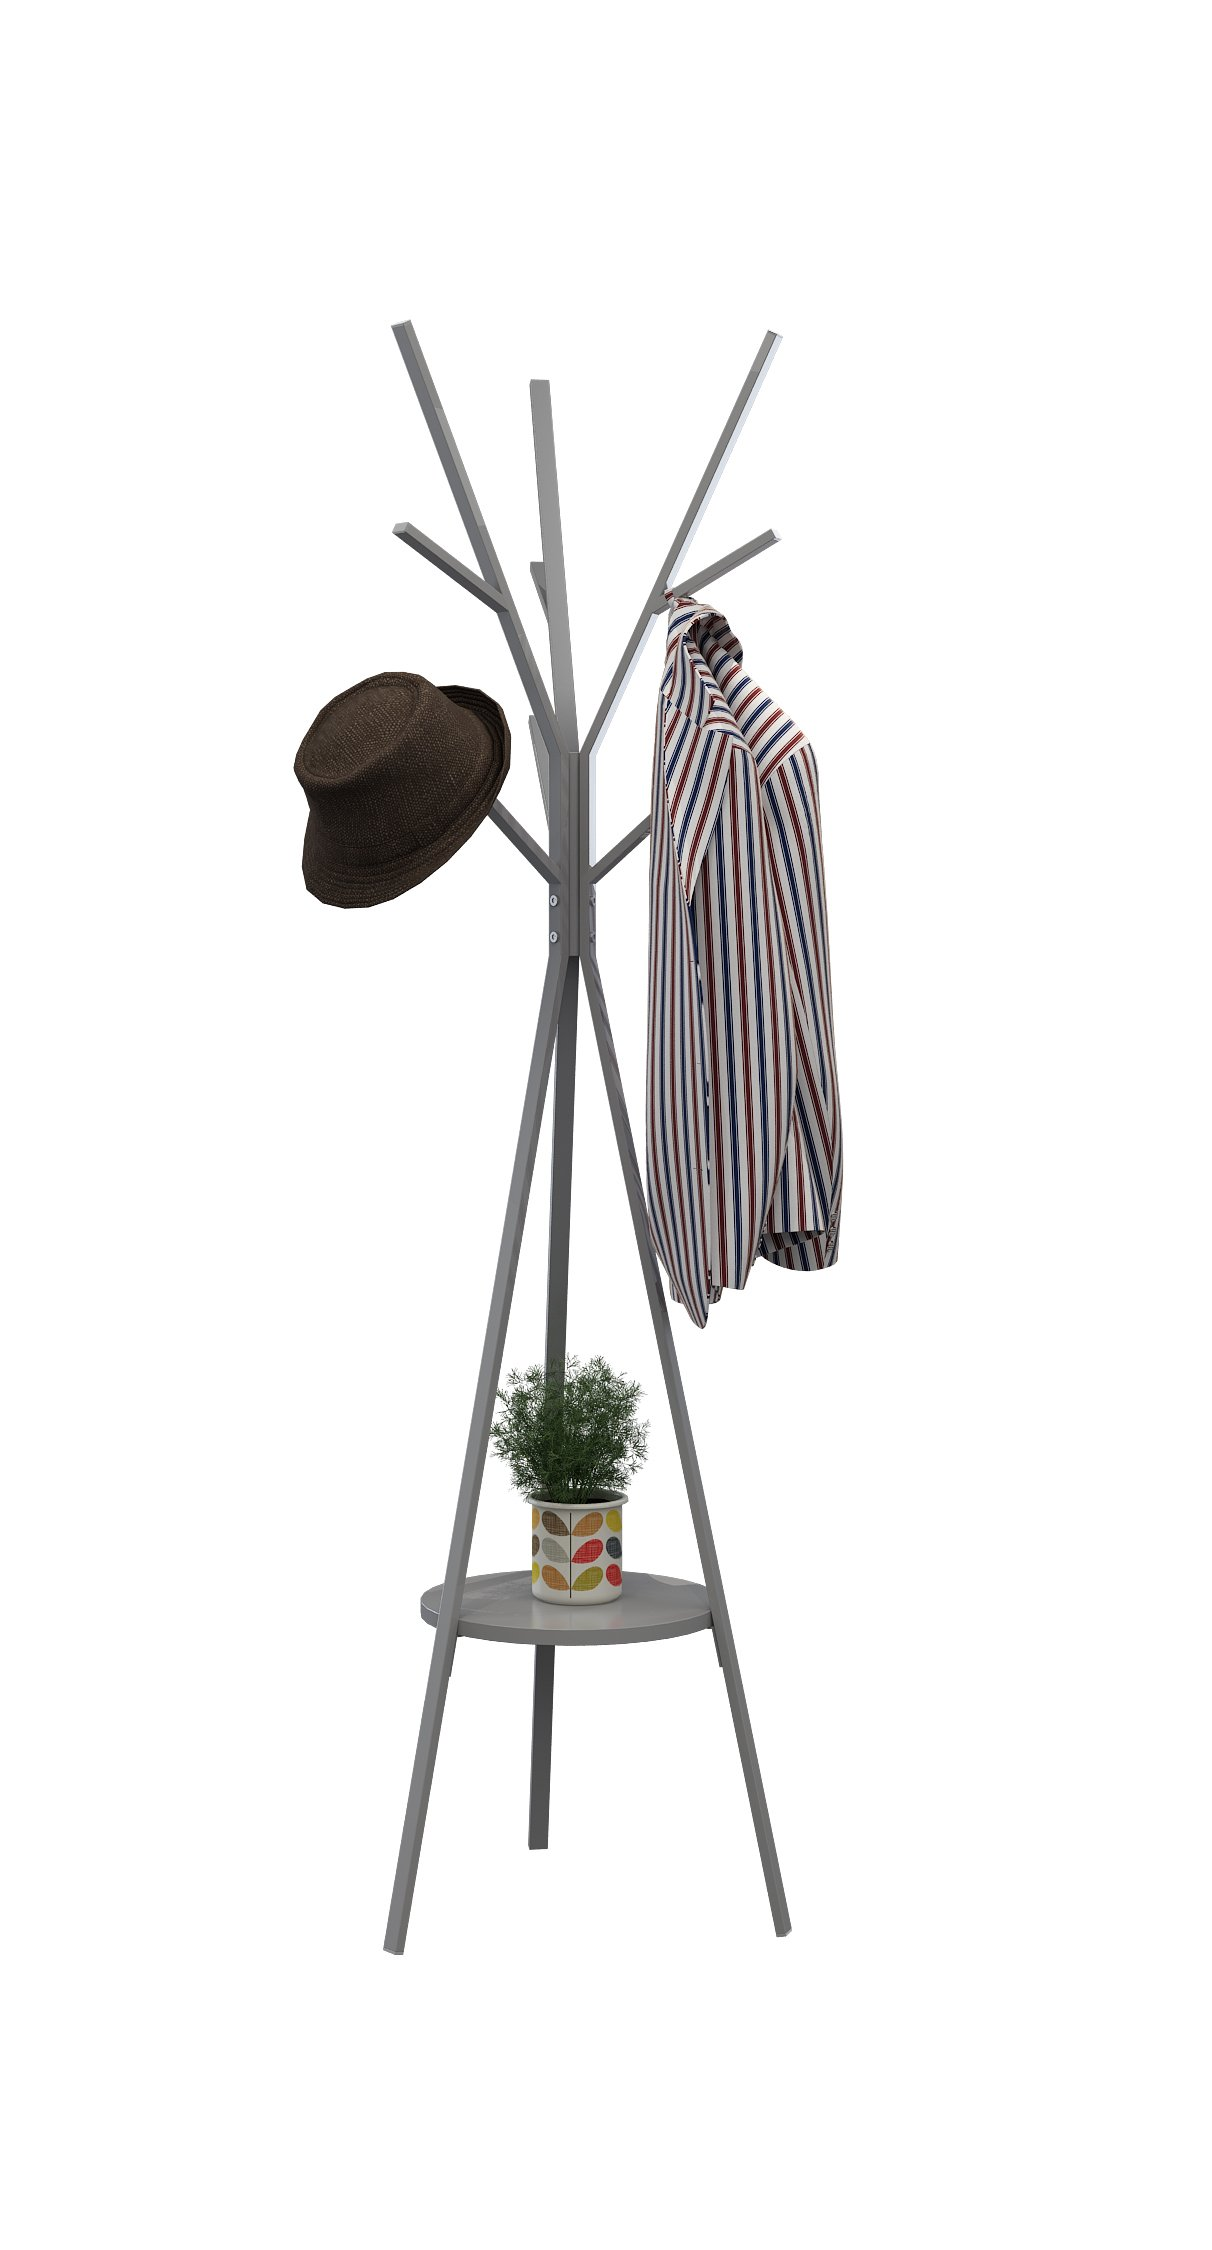 "Homebi Coat Rack Hat Stand Free Standing Display Hall Tree Metal Hat Hanger Garment Storage Holder with 9 Hooks for Clothes Hats and Scarves in Grey,17.72"" Wx17.72 Dx70.87 H - STABLE AND DURABLE COAT AND HAT STAND:Simple and solid concept.Made of powder-coated metal tubes and diameter 11.41 inches MDF circle board,this coat hat rack is more durable and sturdy while using.The powder-coated metal tubes do not rust or corrode with normal use.And the tubes have been strengthened to 38mm/1.49inches,enabling this coat stand easily support winter jackets and loading more capacity. DECORATIVE AND FUNCTIONAL METAL COAT HANGER STAND:Practical and at the same time can be a good decoration at home.Ample storage space,totally 3 main branches with 9 hooks ,this coat hat standing hanger is a perfect storage solution for coats,handbags,scarves,hockey gear,motorcycle helmets,jackets,gloves and more.The bottom circle shelf can store drawer units ,bins,toys and flowerpot as you please. MODERN LOOKING HAT DISPLAY RACK WITH ARCHITECTURAL DESIGN AND WORKMANSHIP:Aesthetically appealing to be a decorative piece and functional enough to organize your clothes,hats and more.The trigonometrical legs well support this coat rack firmly even when you hang heavy bags and winter clothes.Each hook can well bear 2kgs(4.4lbs).Sturdy enough to hold up 40.0lbgs.And the end hook caps perfectly protect your clothing and hats.Item weight:6.6 lbs/3.01KGS. - entryway-furniture-decor, entryway-laundry-room, coat-racks - 71%2BQvzYgIML -"